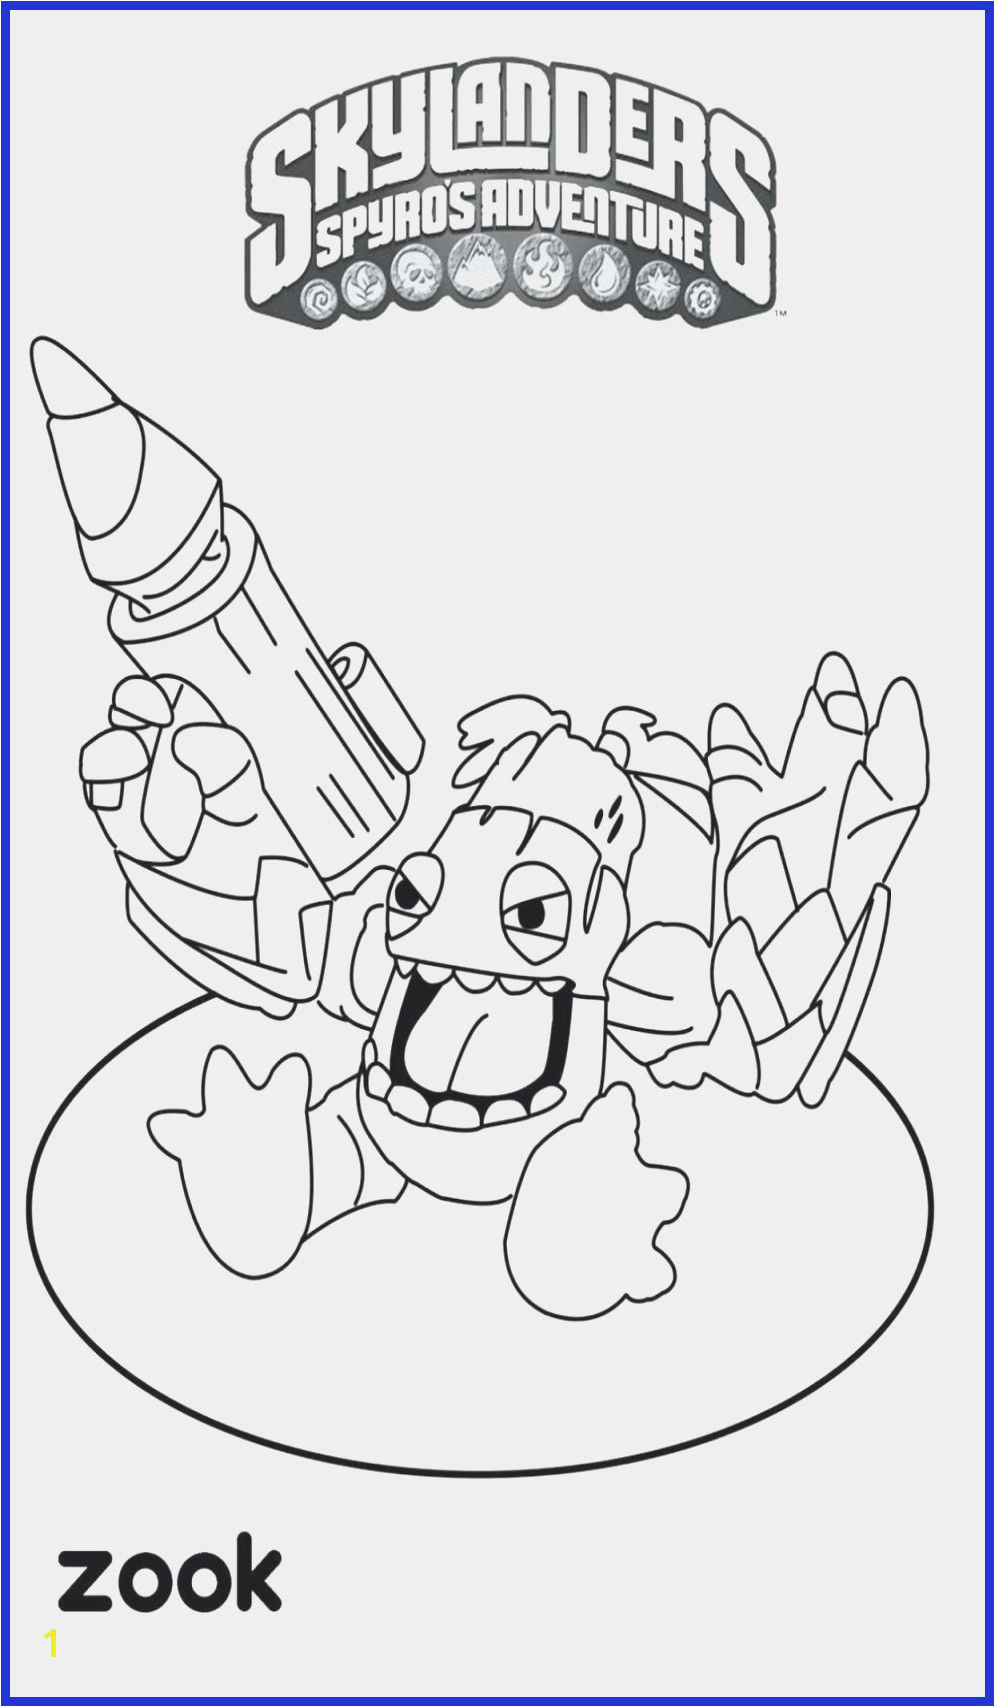 Character Counts Coloring Pages Free 71 Unique Gallery Peacock Coloring Pages